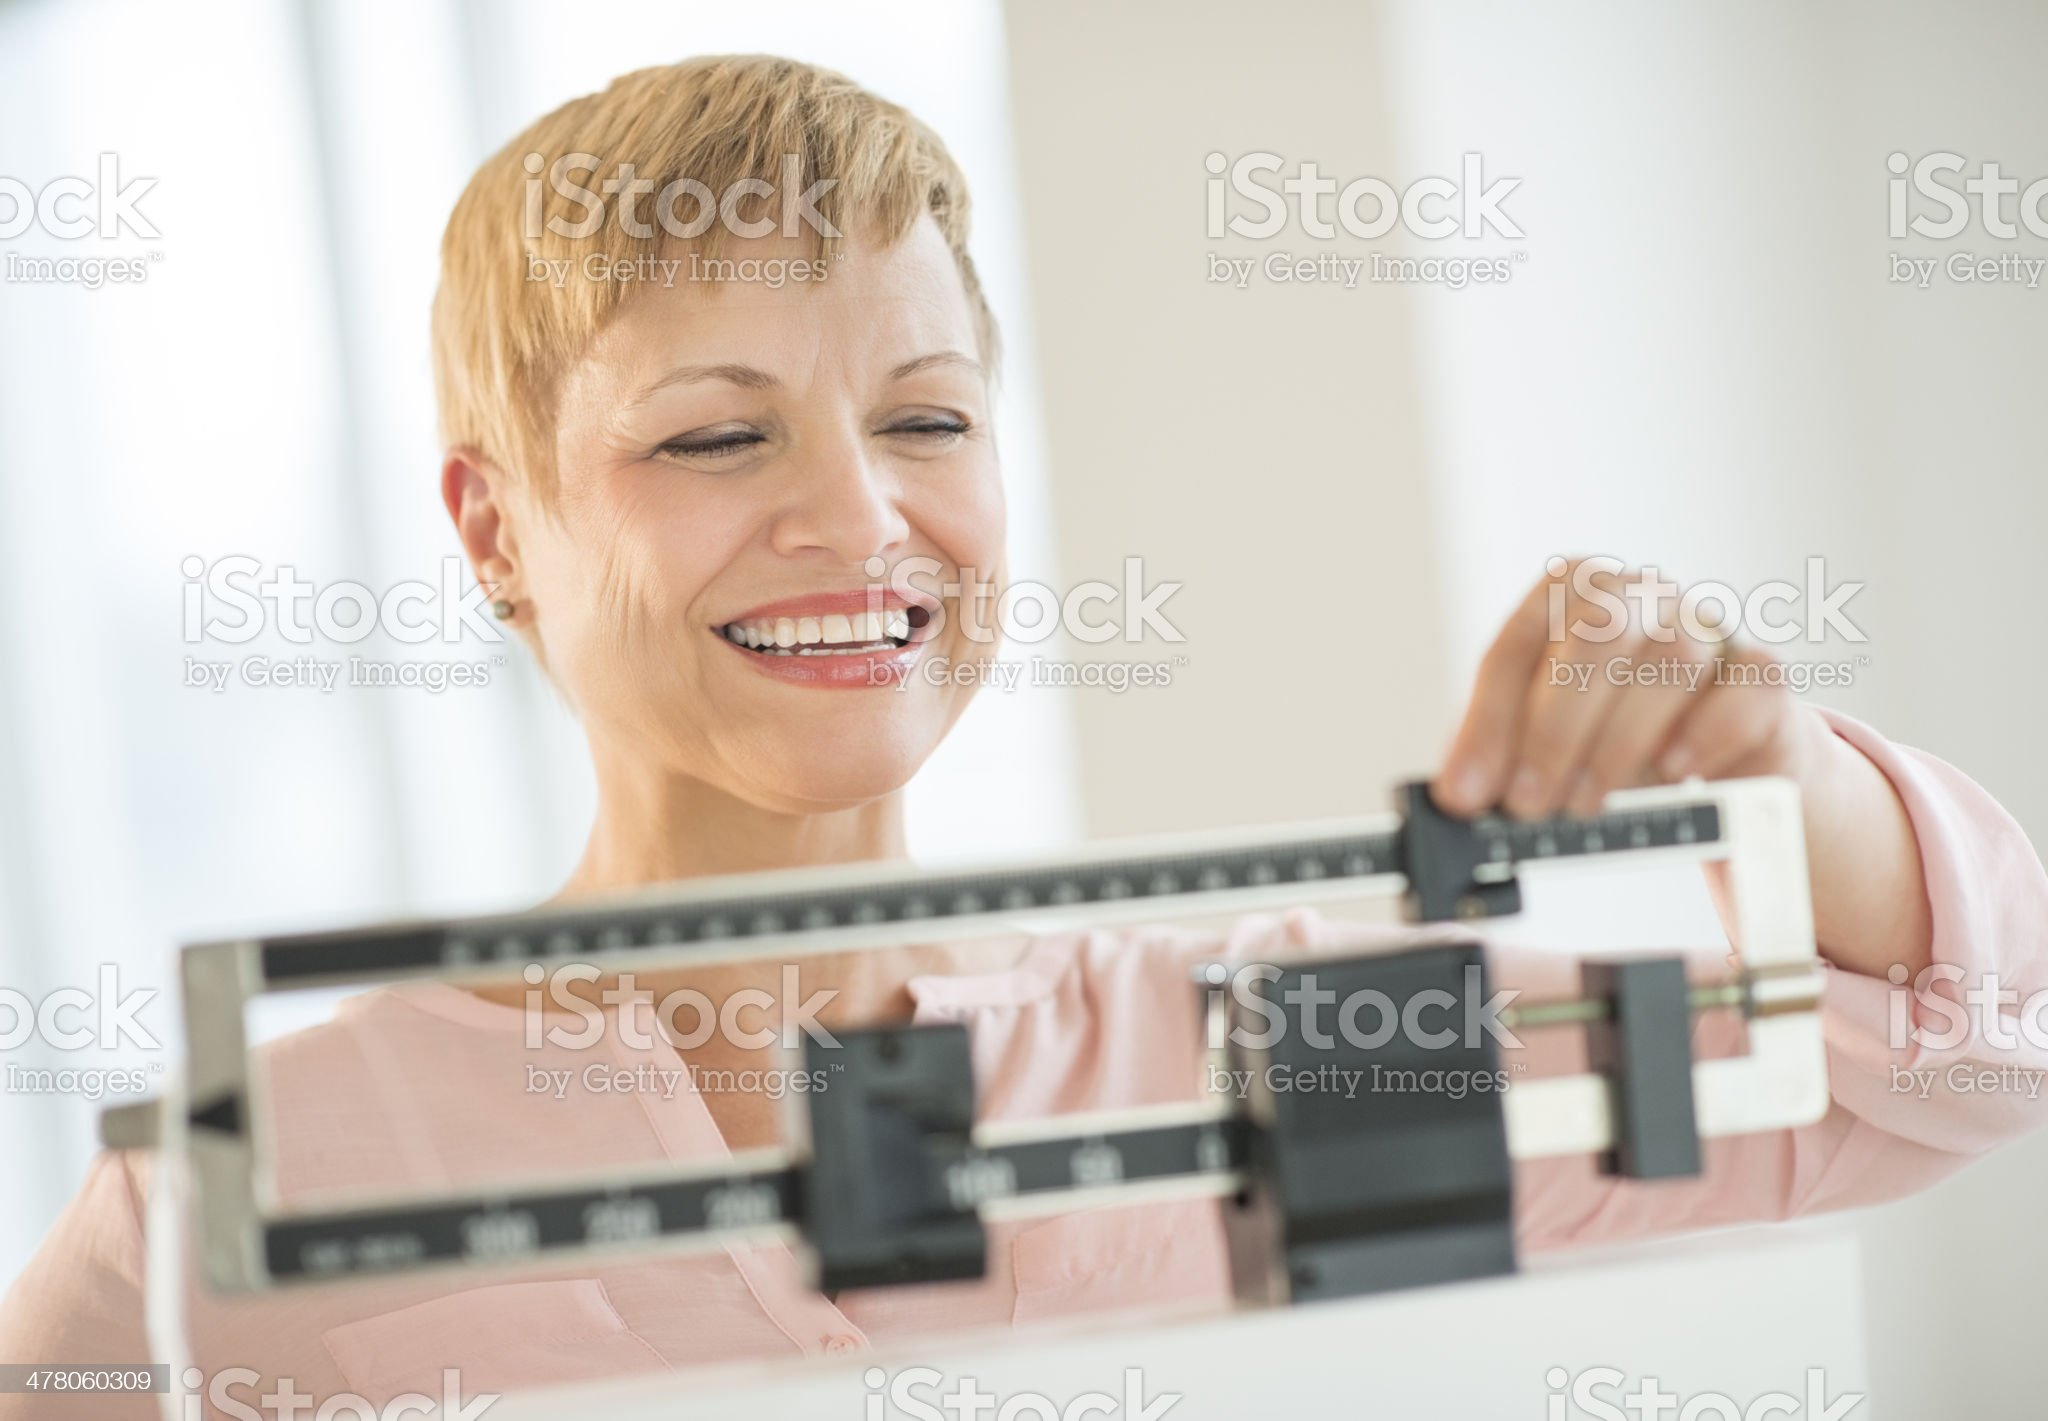 Happy Woman Adjusting Balance Weight Scale royalty-free stock photo